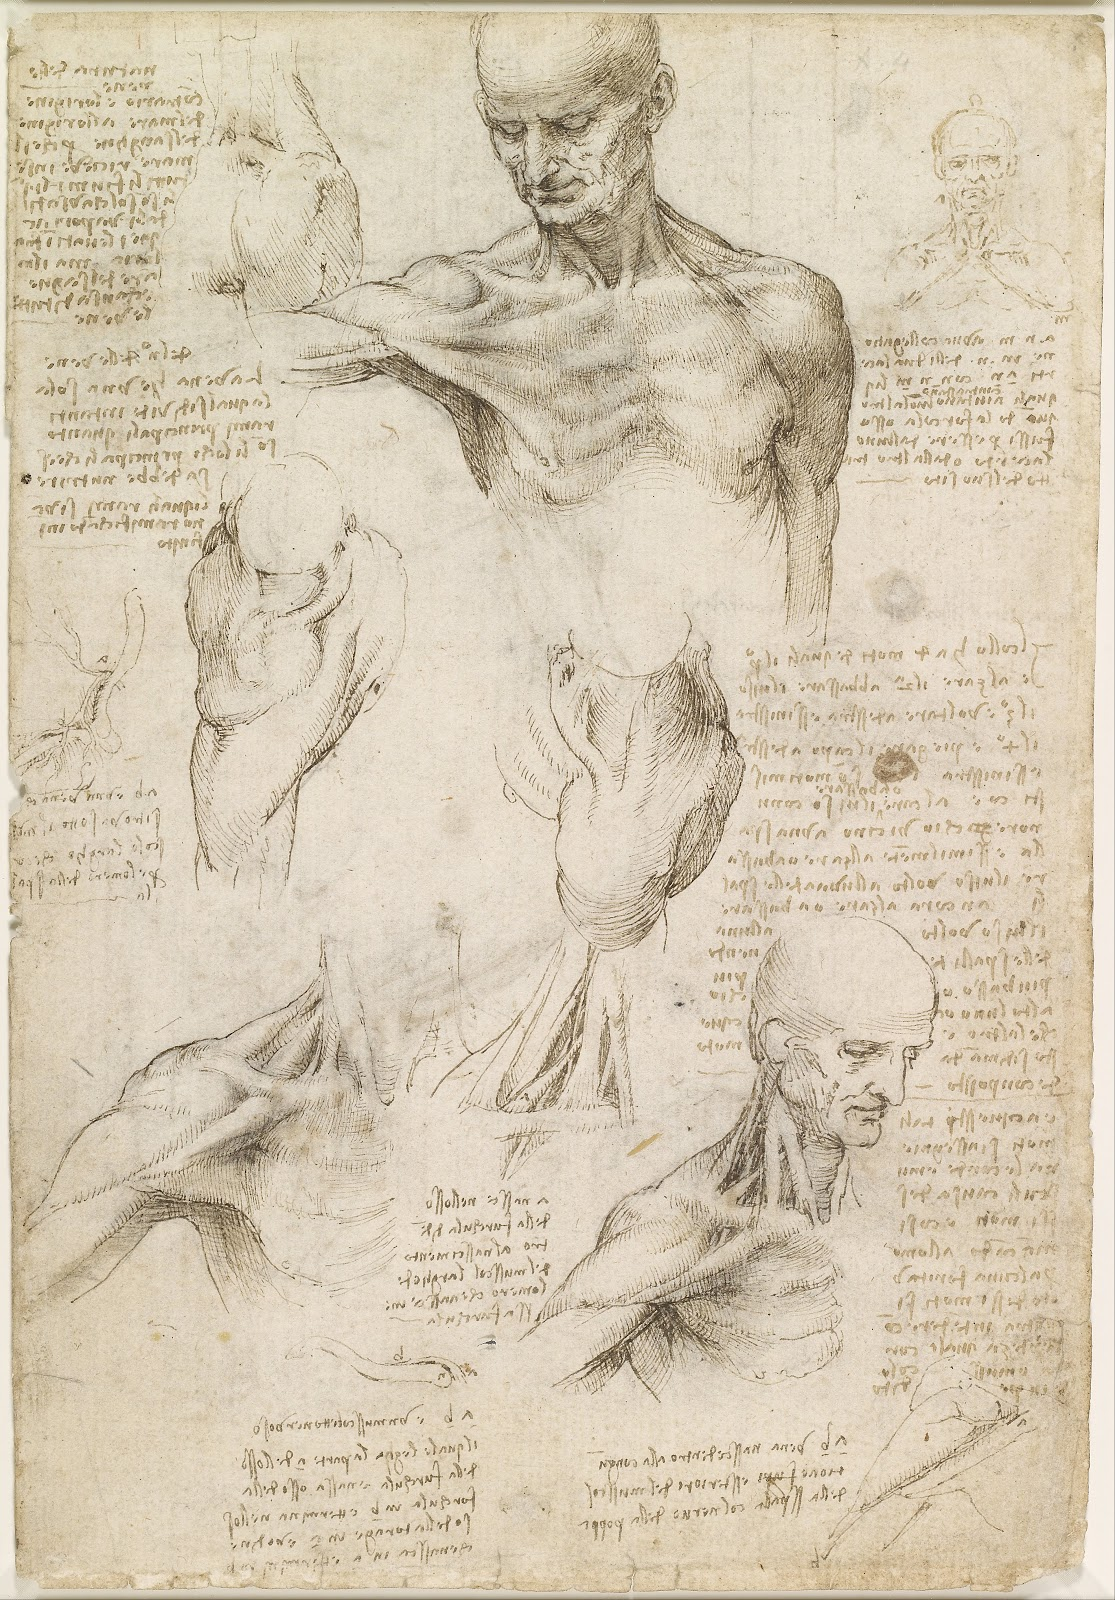 One of Da Vinci's anatomical drawings, a realistic depiction of musculature.